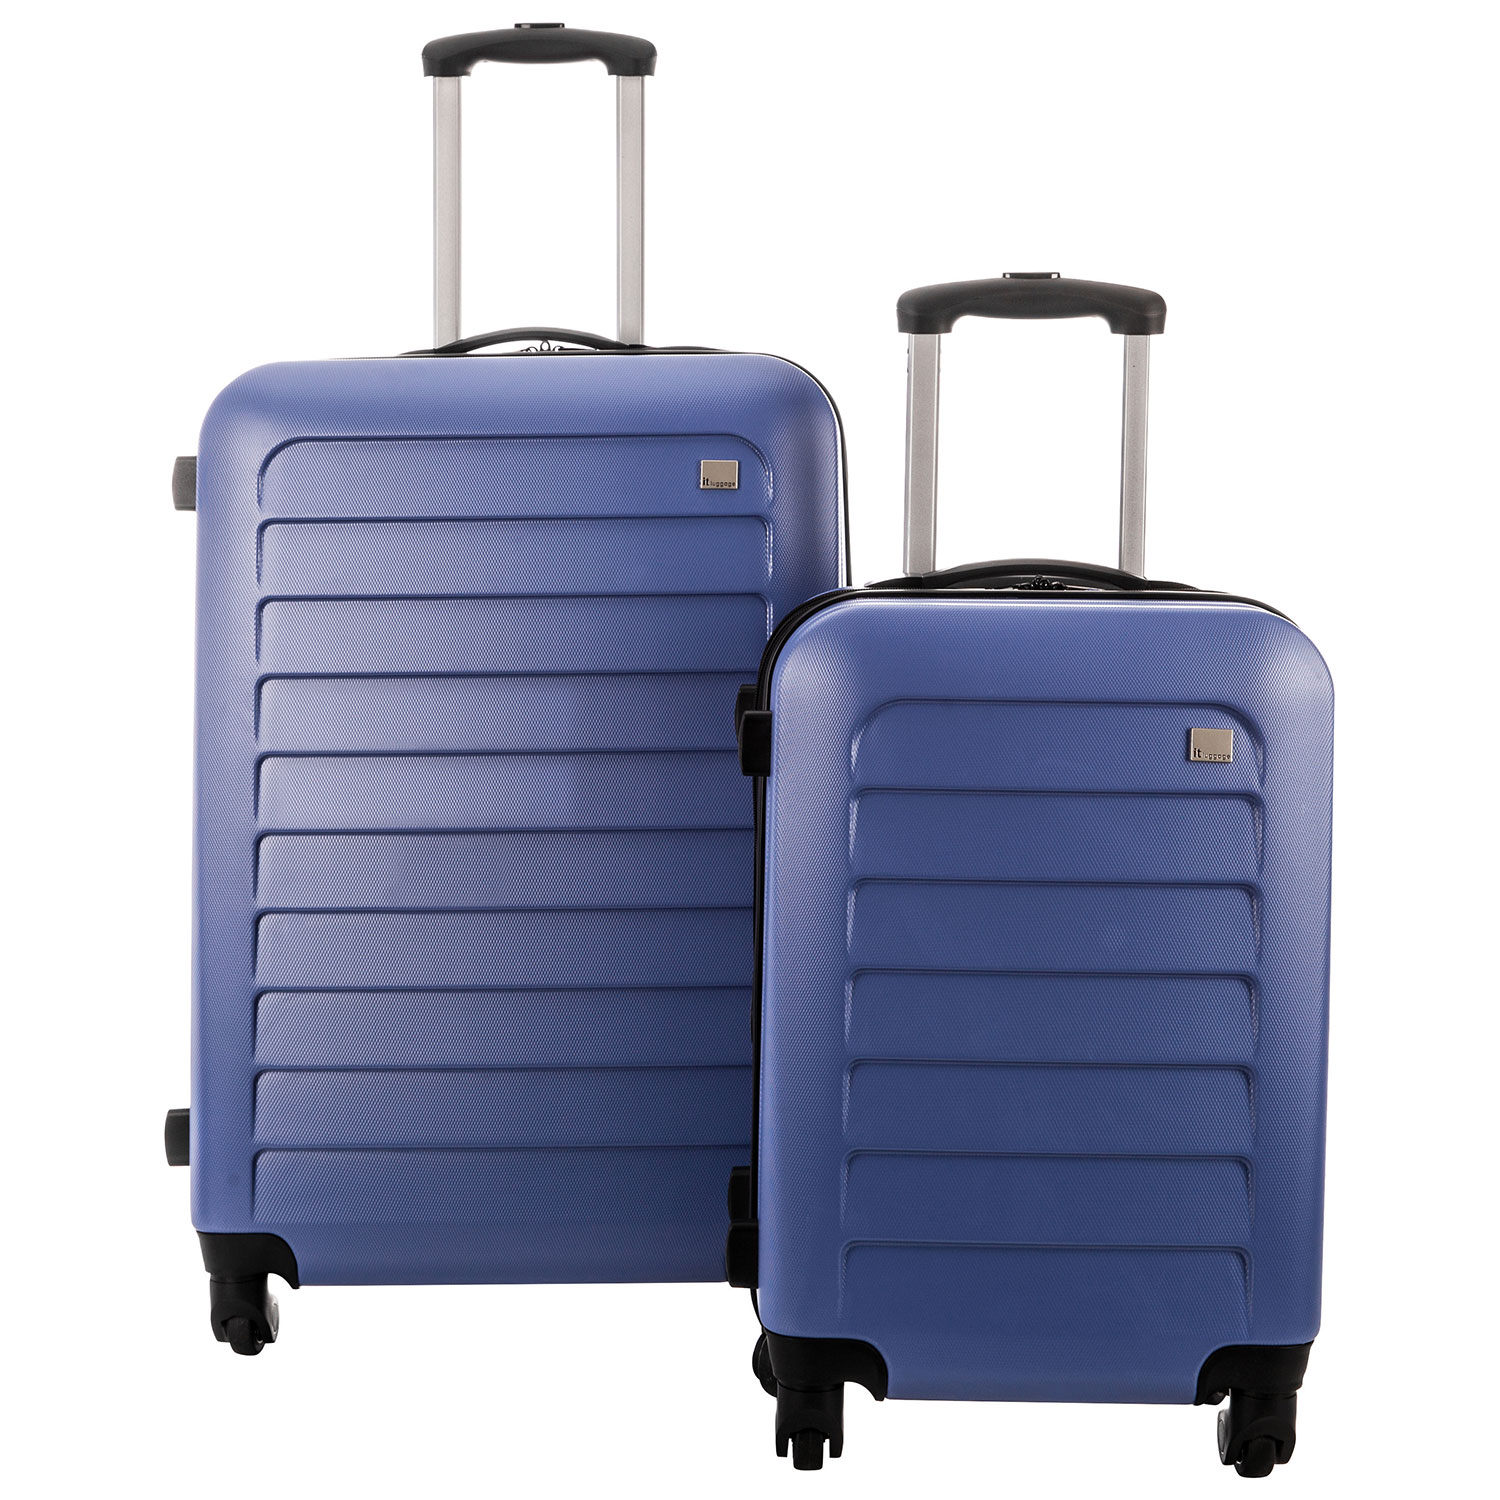 Luggage & Bags : Luggage, Bags, Watches & Jewelry - Best Buy Canada